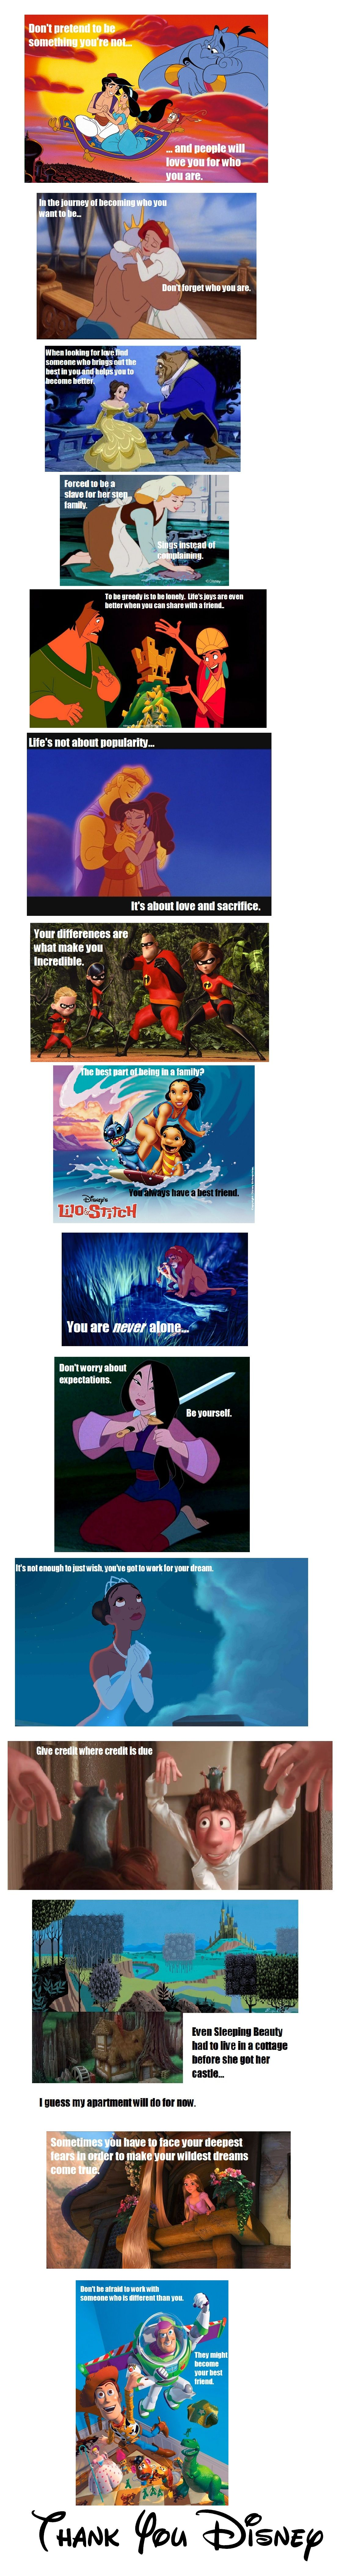 Life Lessons from Disney.